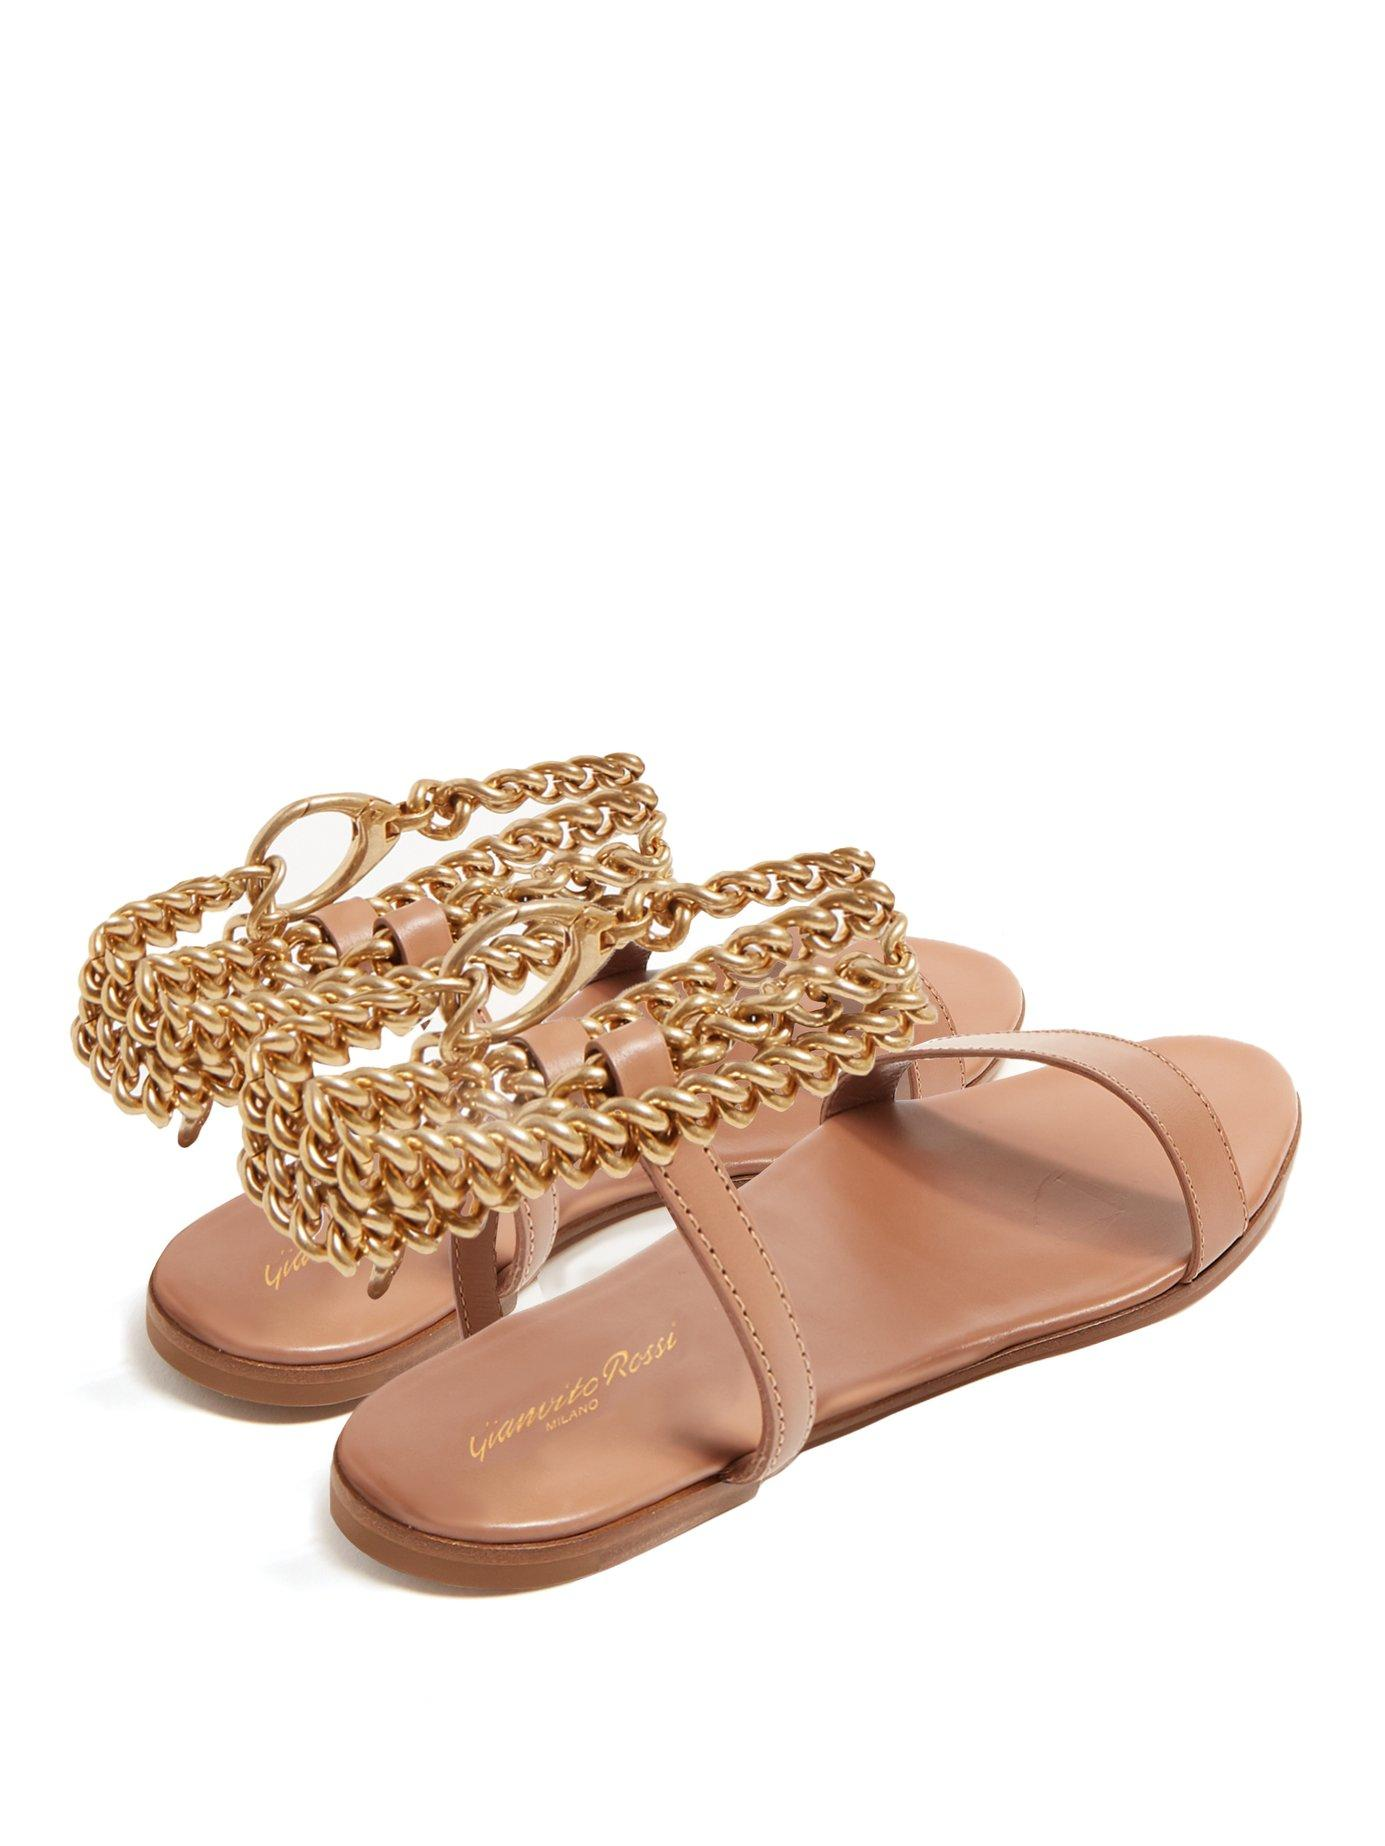 c624dc25f Gianvito Rossi - Multicolor Chain Ankle Strap Leather Sandals - Lyst. View  fullscreen